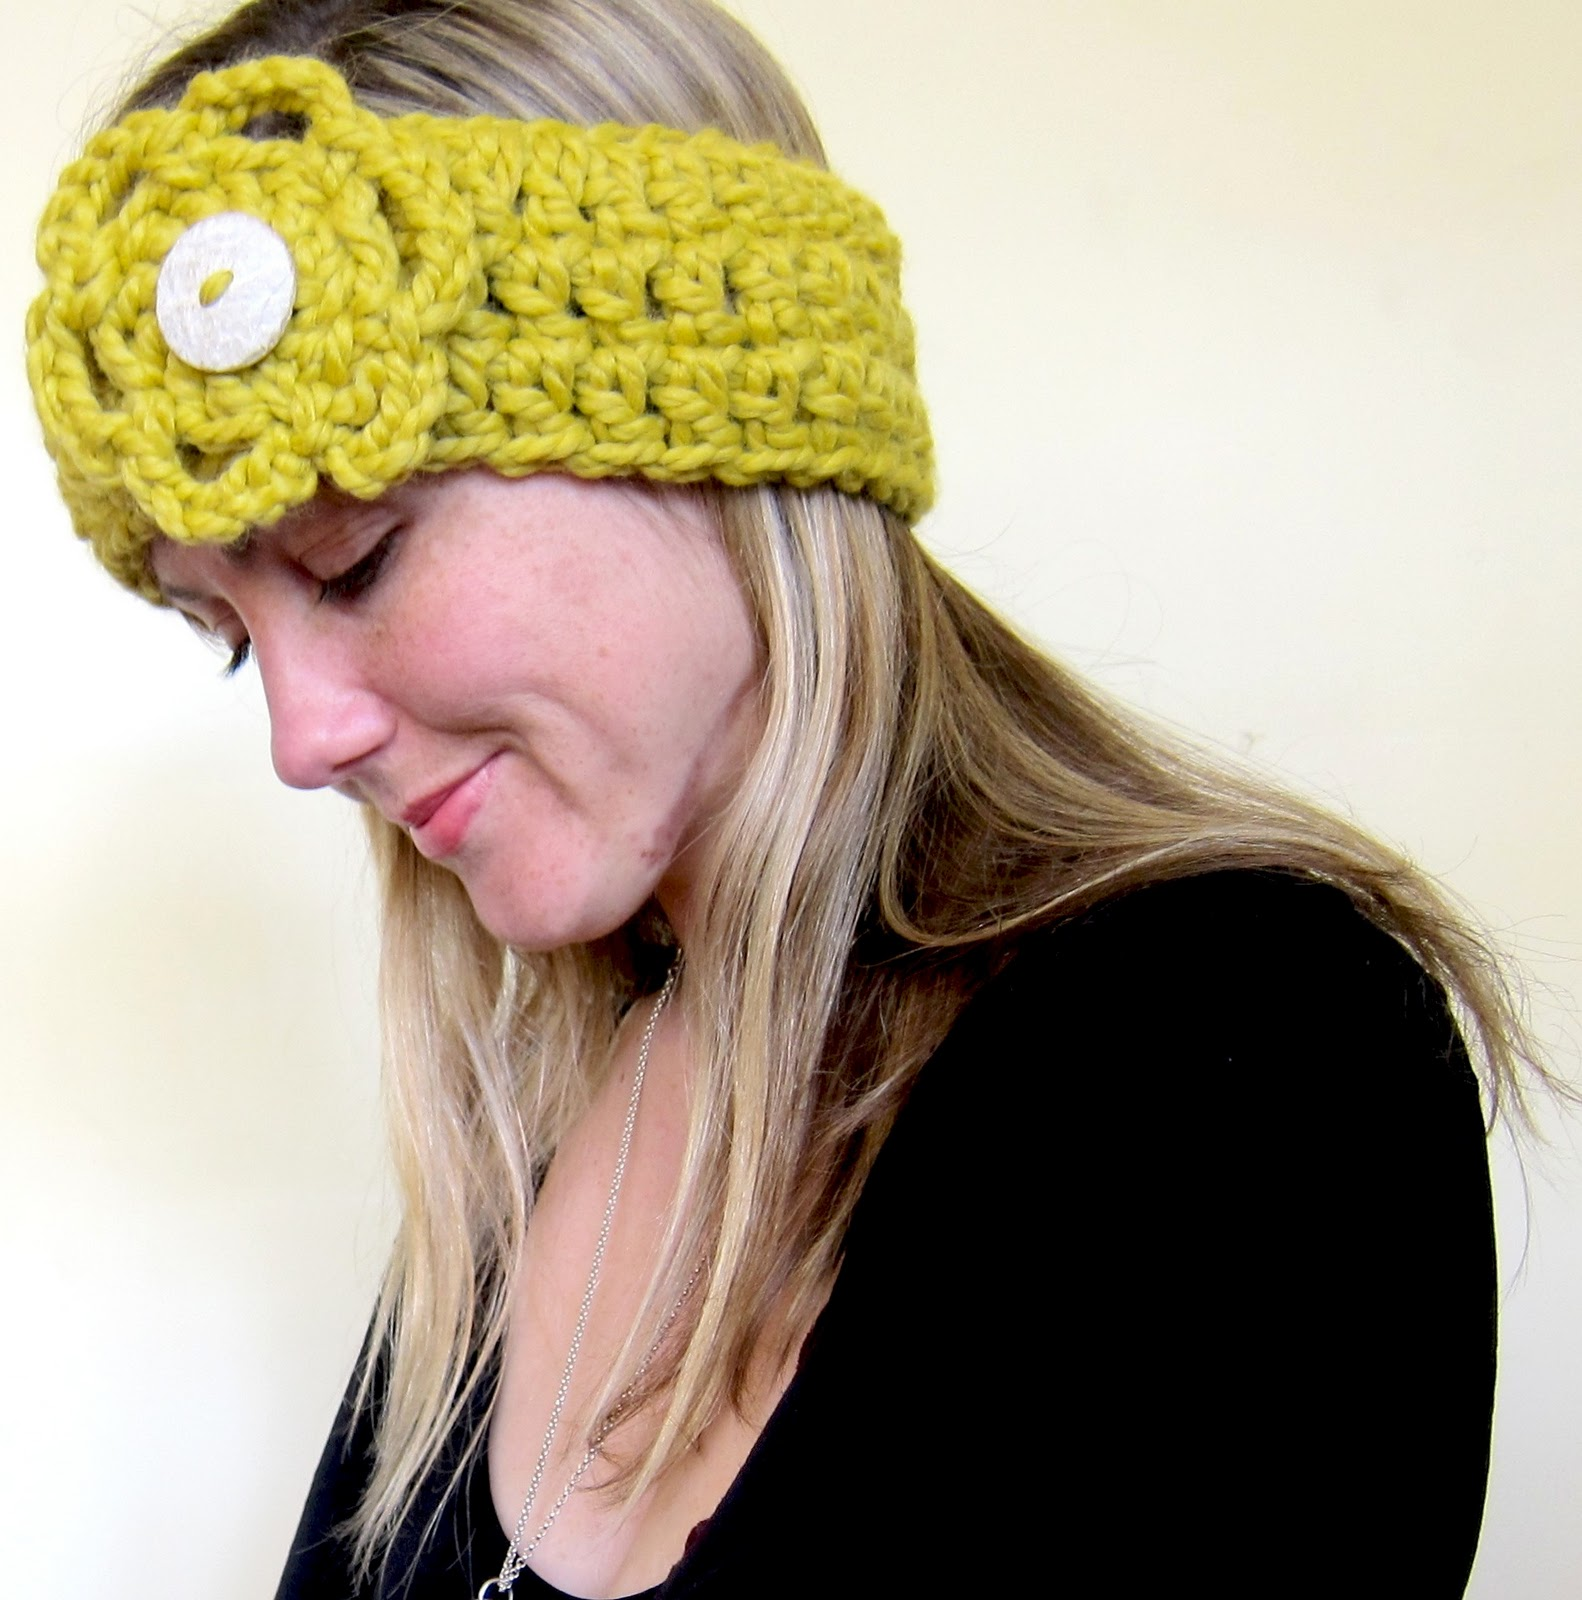 Free Crochet Pattern Headband Ear Warmer Button : Mel P Designs: Free crochet headband earwarmer pattern